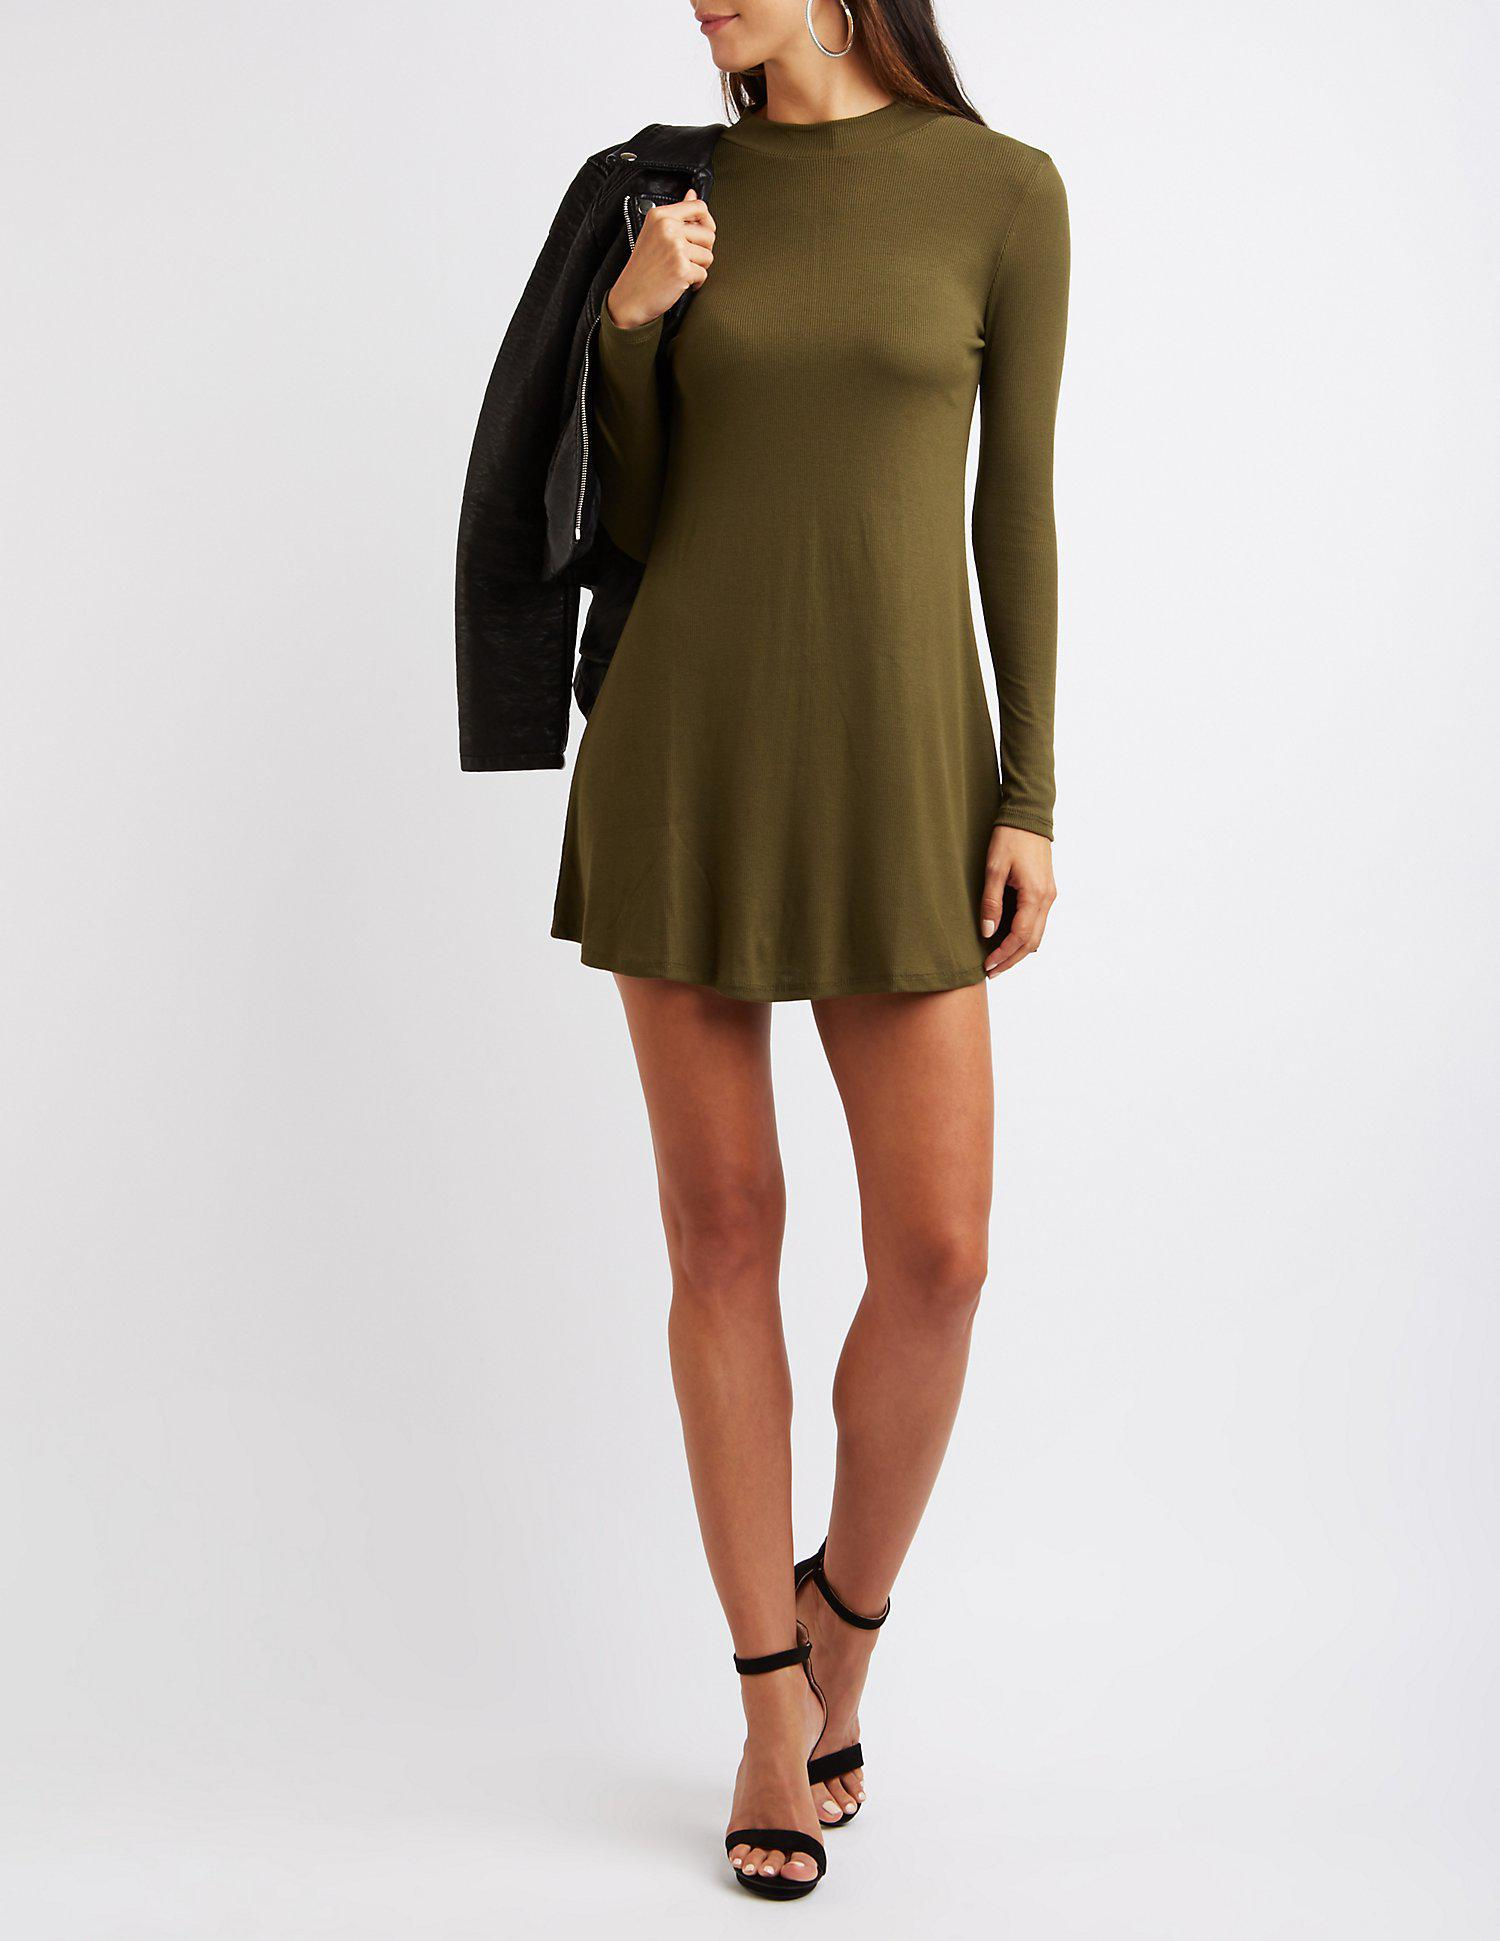 c9e12e24e4a8 Lyst - Charlotte Russe Ribbed Mock Neck Swing Dress in Green